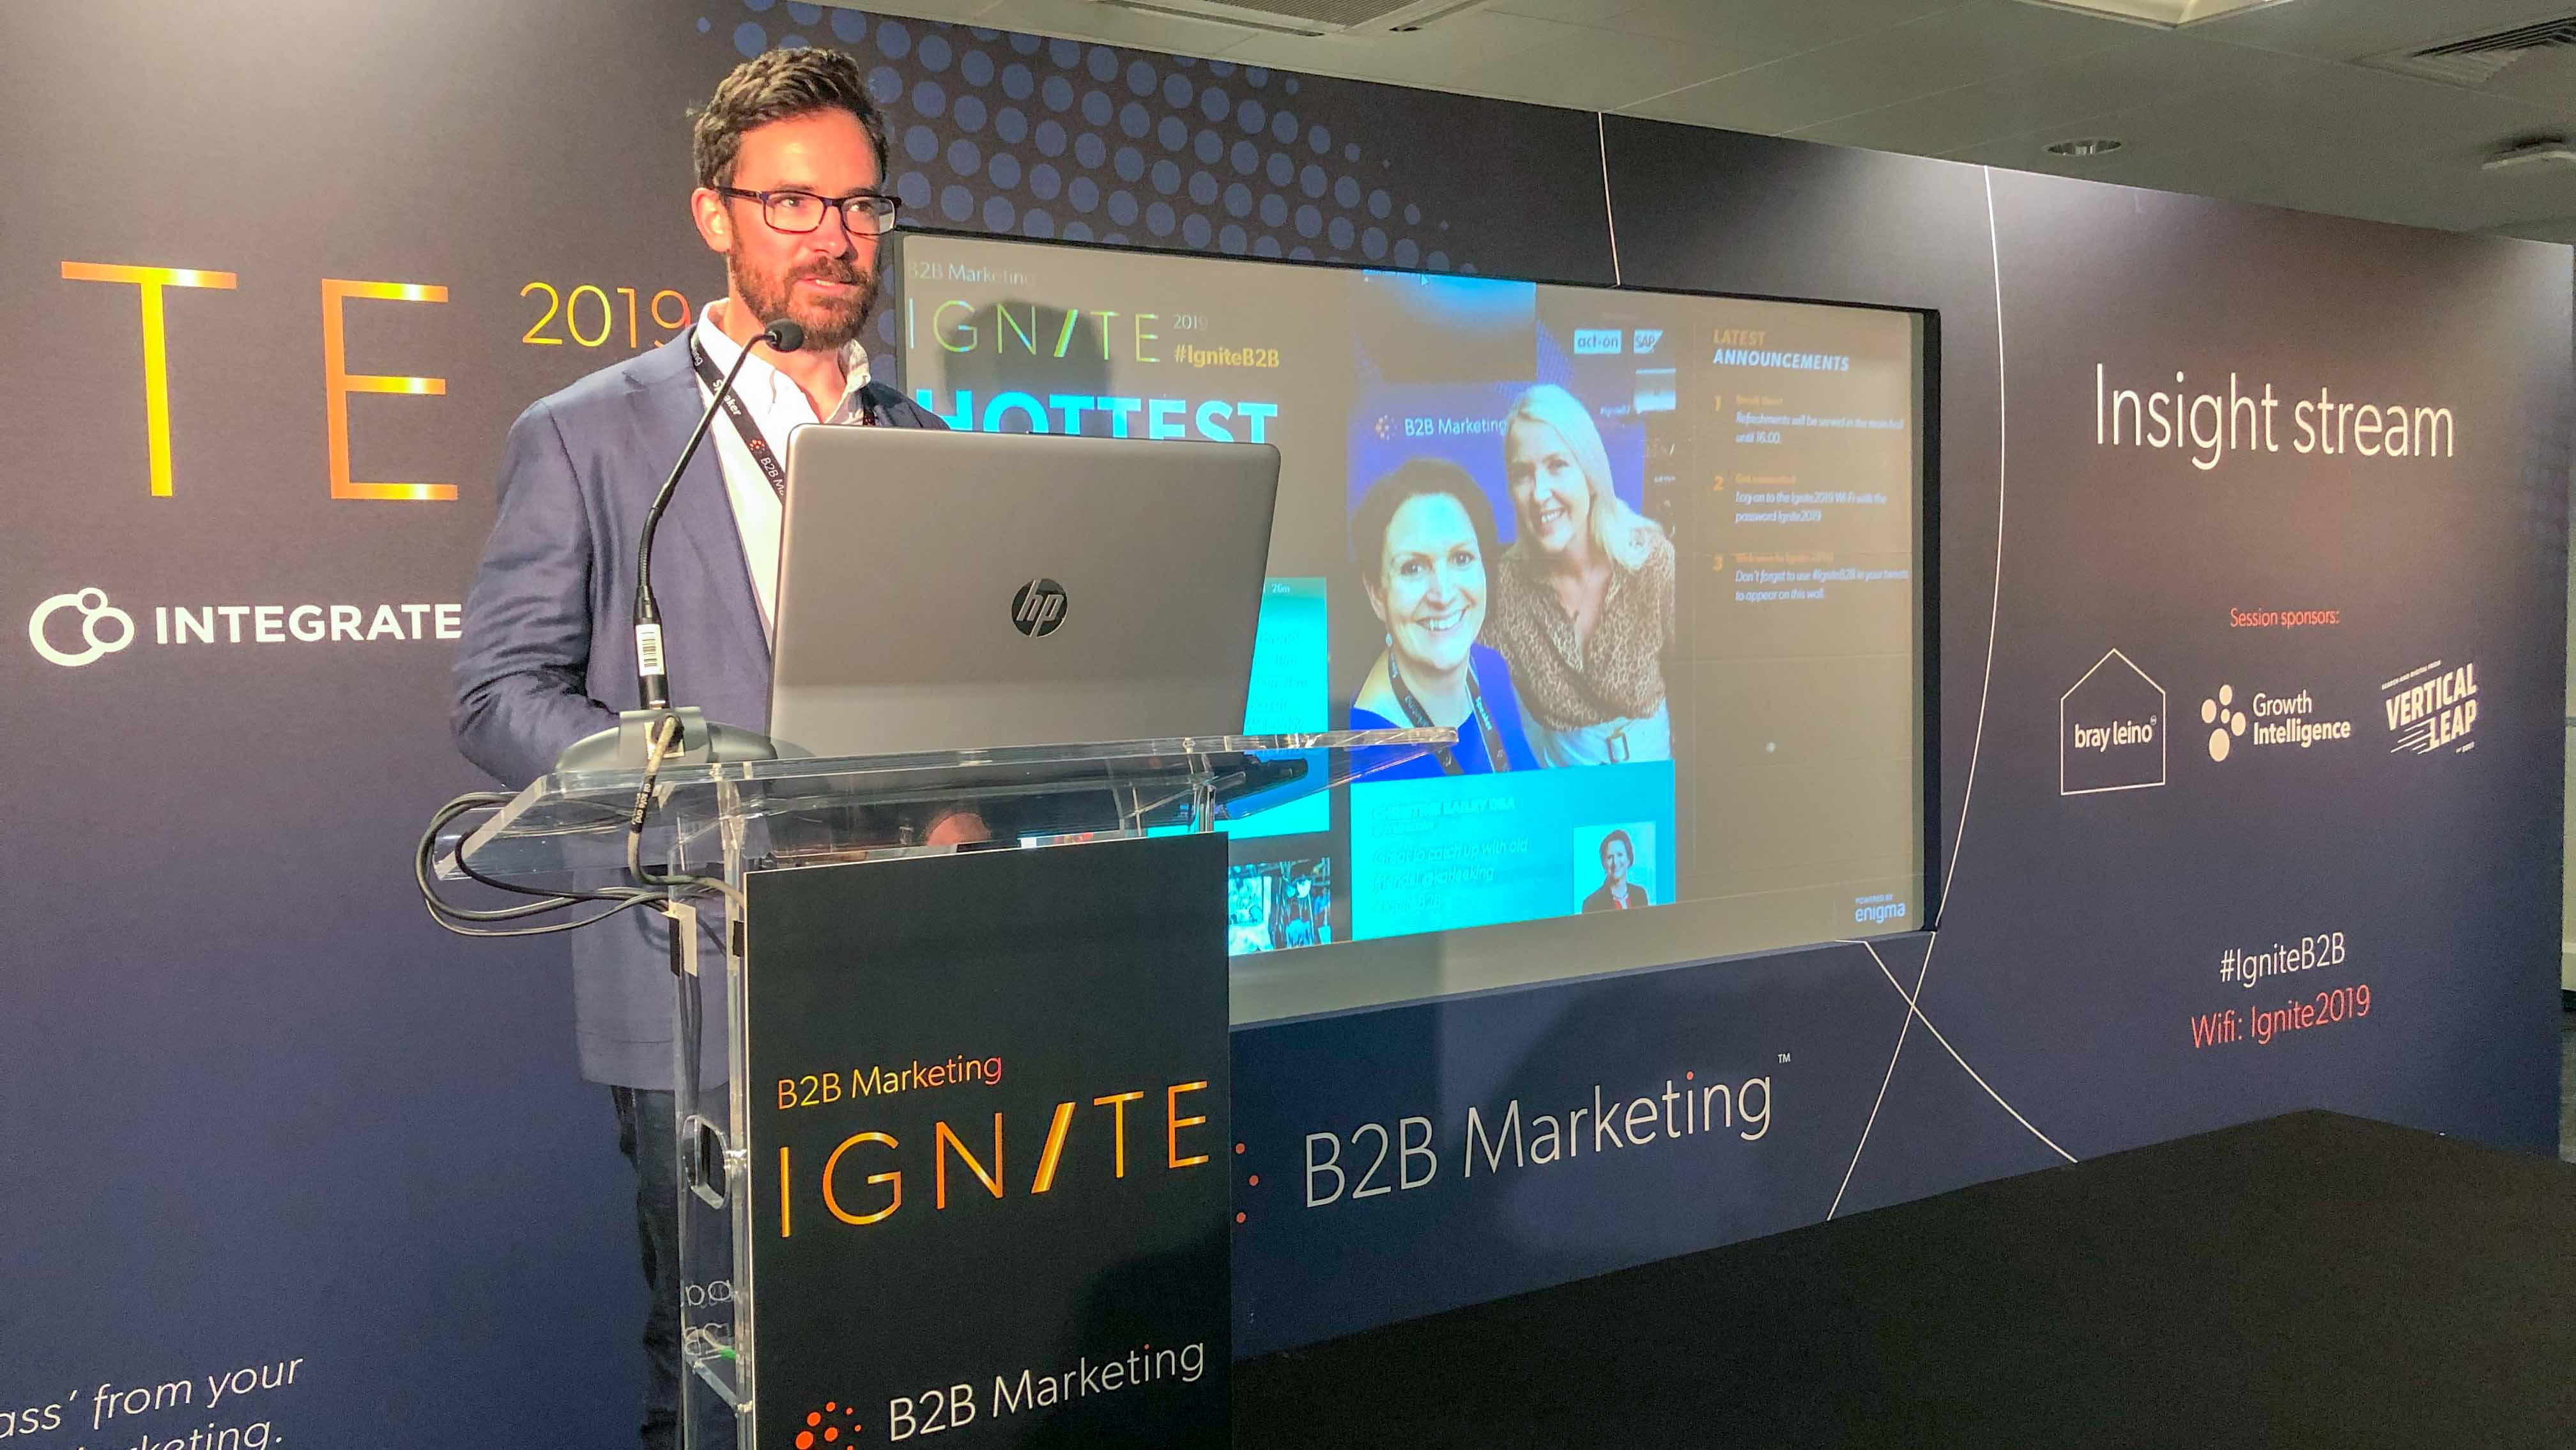 Pete Morgan sharing actionable insight to help marketers improve ROI at Ignite B2B 2019.